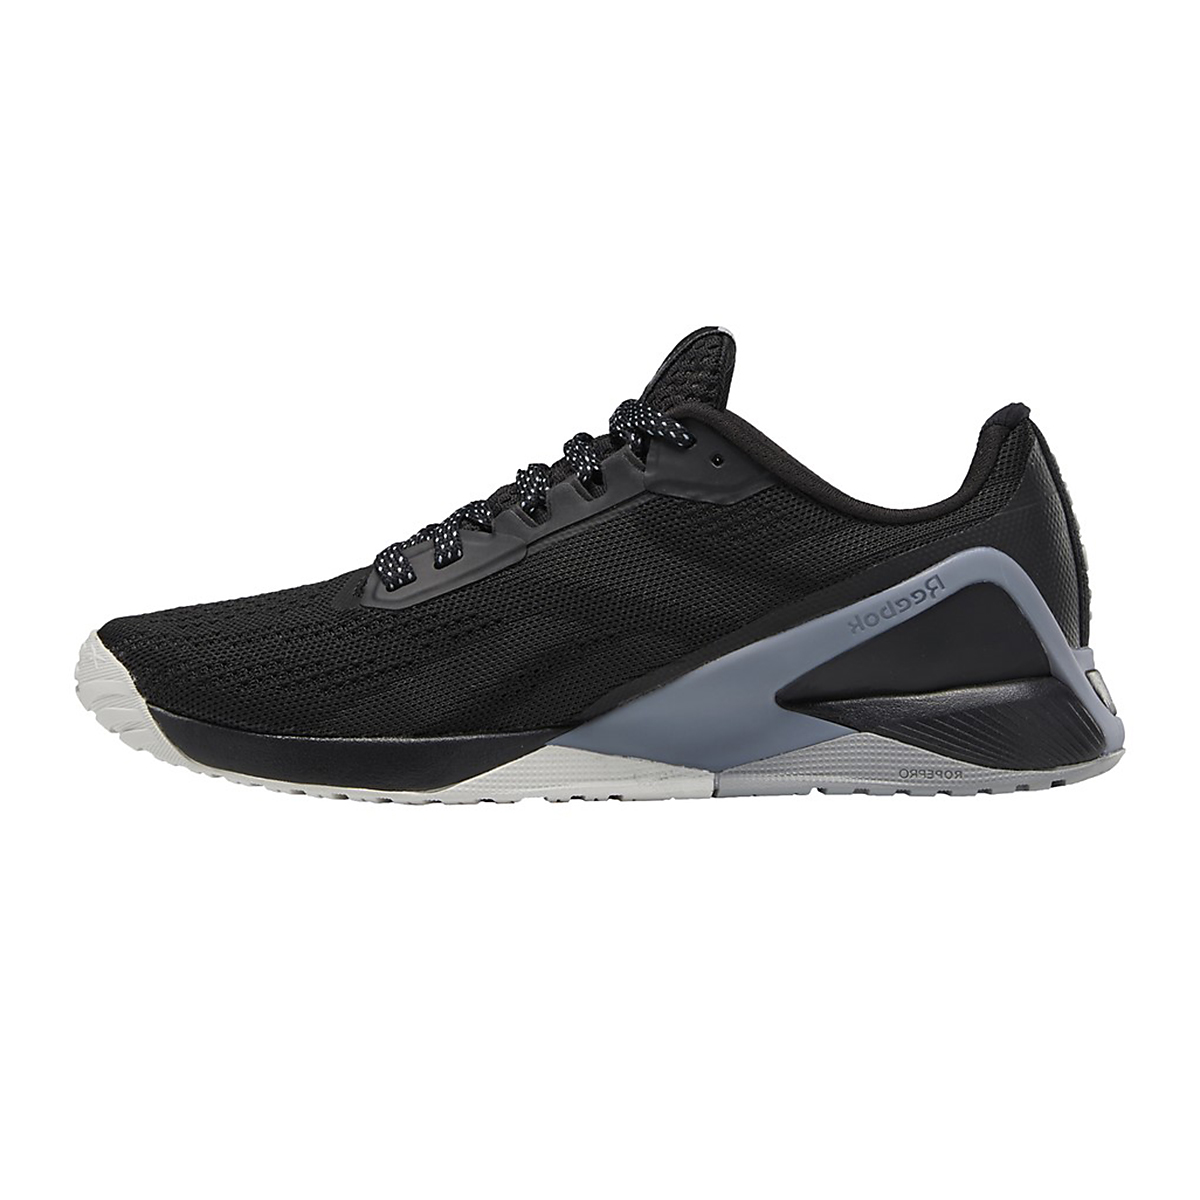 Women's Reebok Nano X1 Training Shoe - Color: Black/Cool Shadow/Cold Grey - Size: 5 - Width: Regular, Black/Cool Shadow/Cold Grey, large, image 2